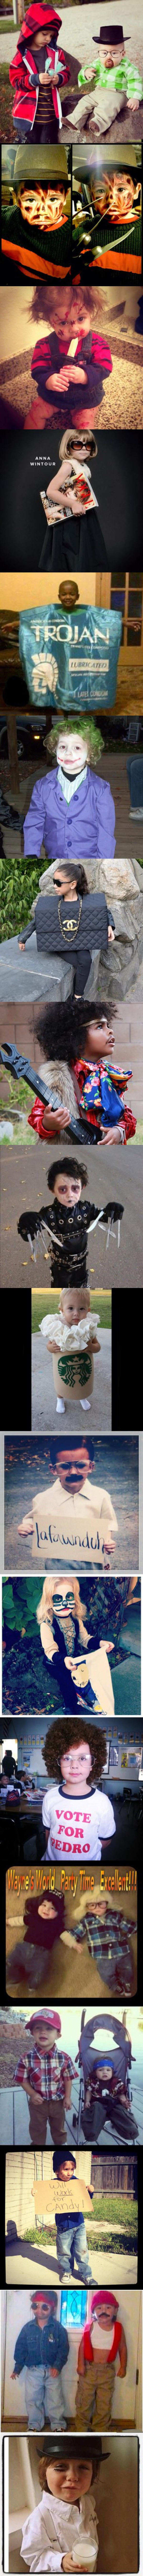 18 kids who definitely have no idea what their costume means, halloween